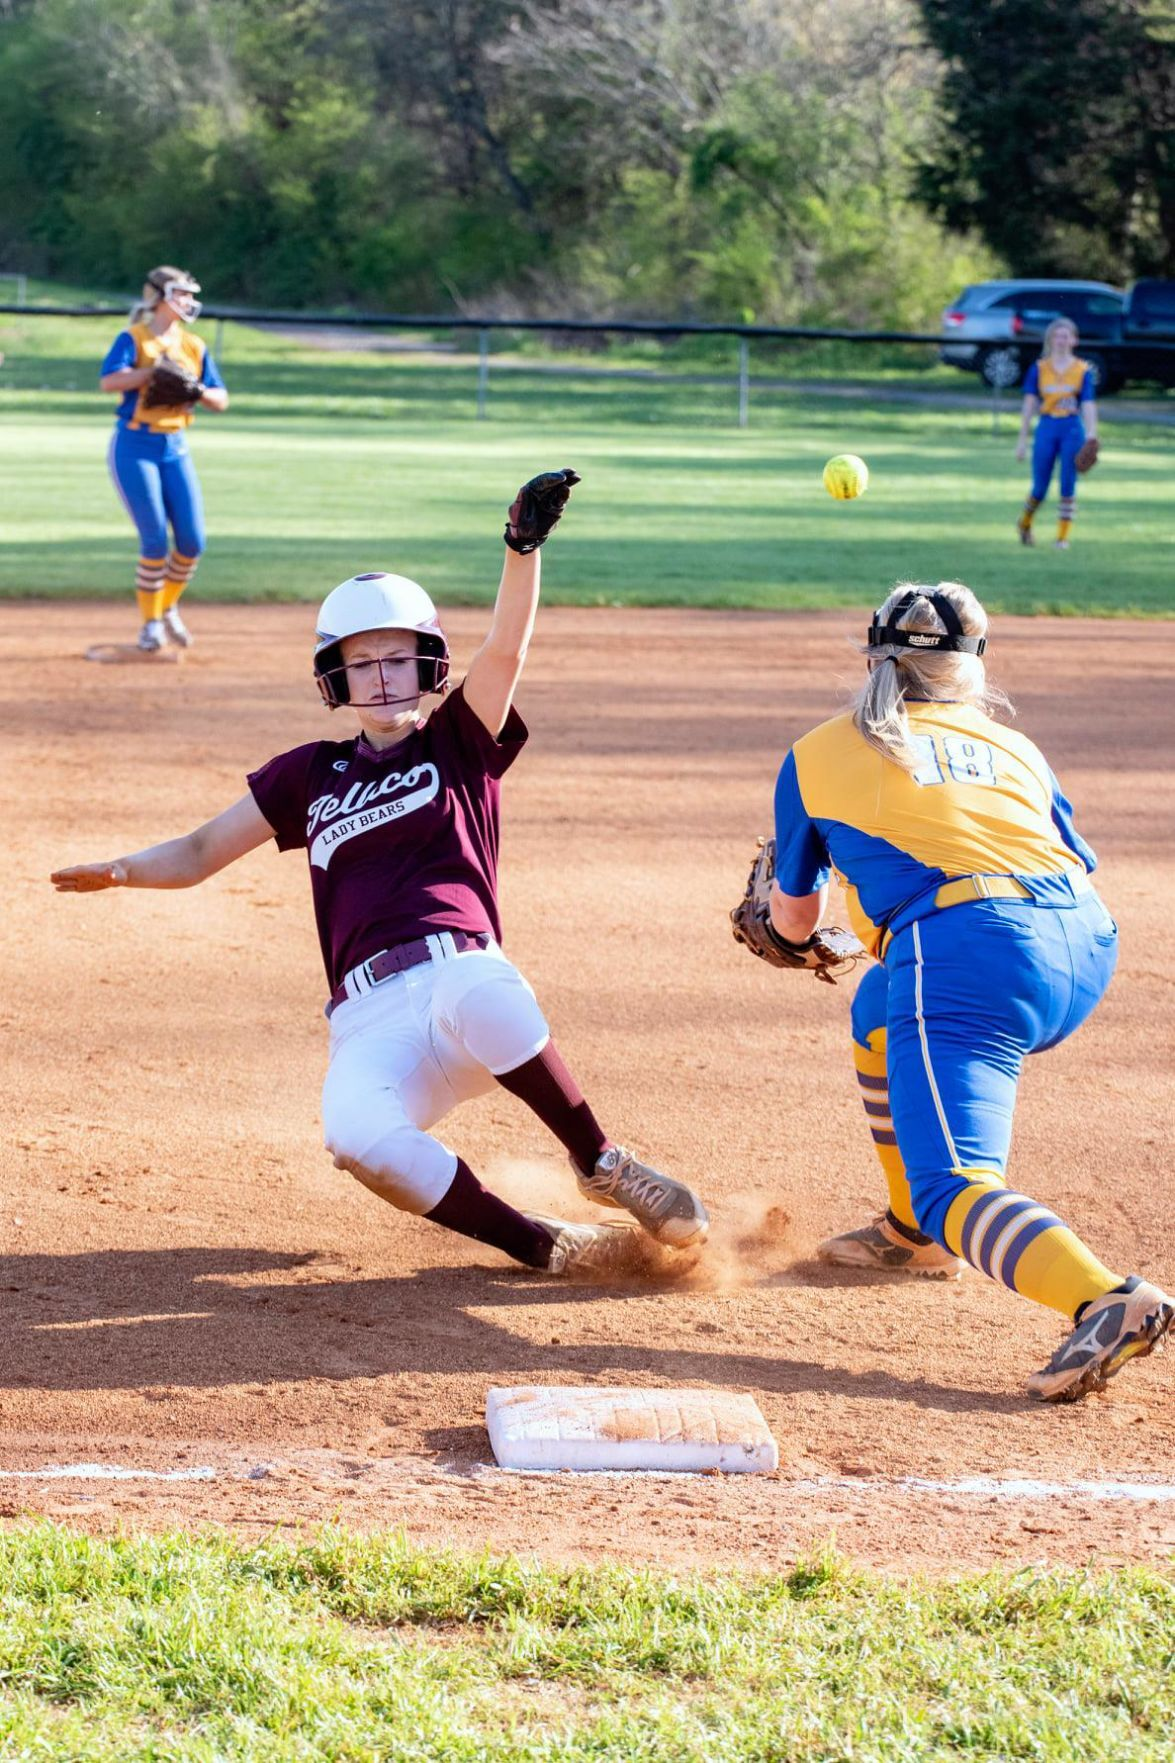 Sweetwater tops Tellico Plains with two big innings, win three straight